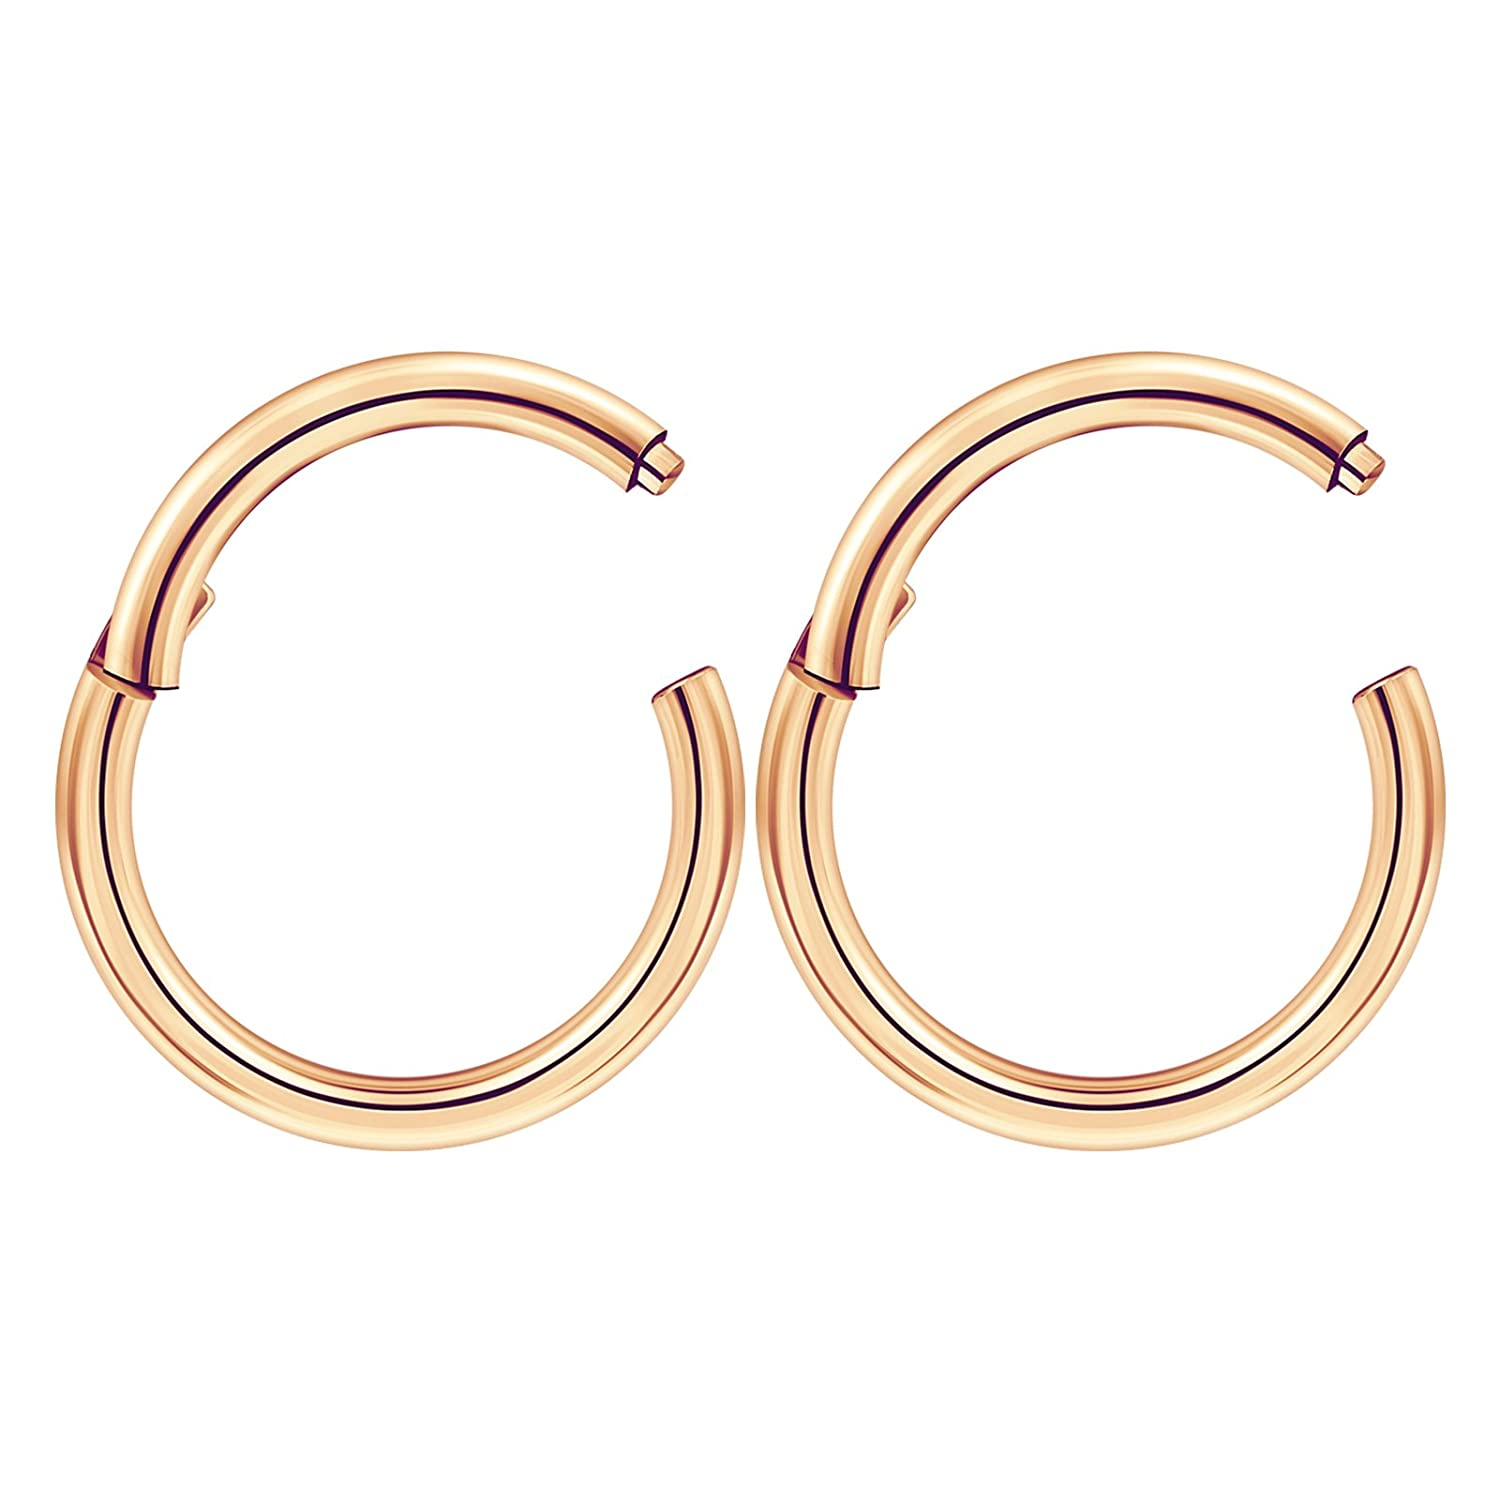 42bf21197 Amazon.com: 2pcs Stainless Steel Rose PVD Plated Hinged Segment Ring Hoop  Septum 14 Gauge 3/8 10mm Earrings Tragus Piercing Jewelry 3461: Jewelry